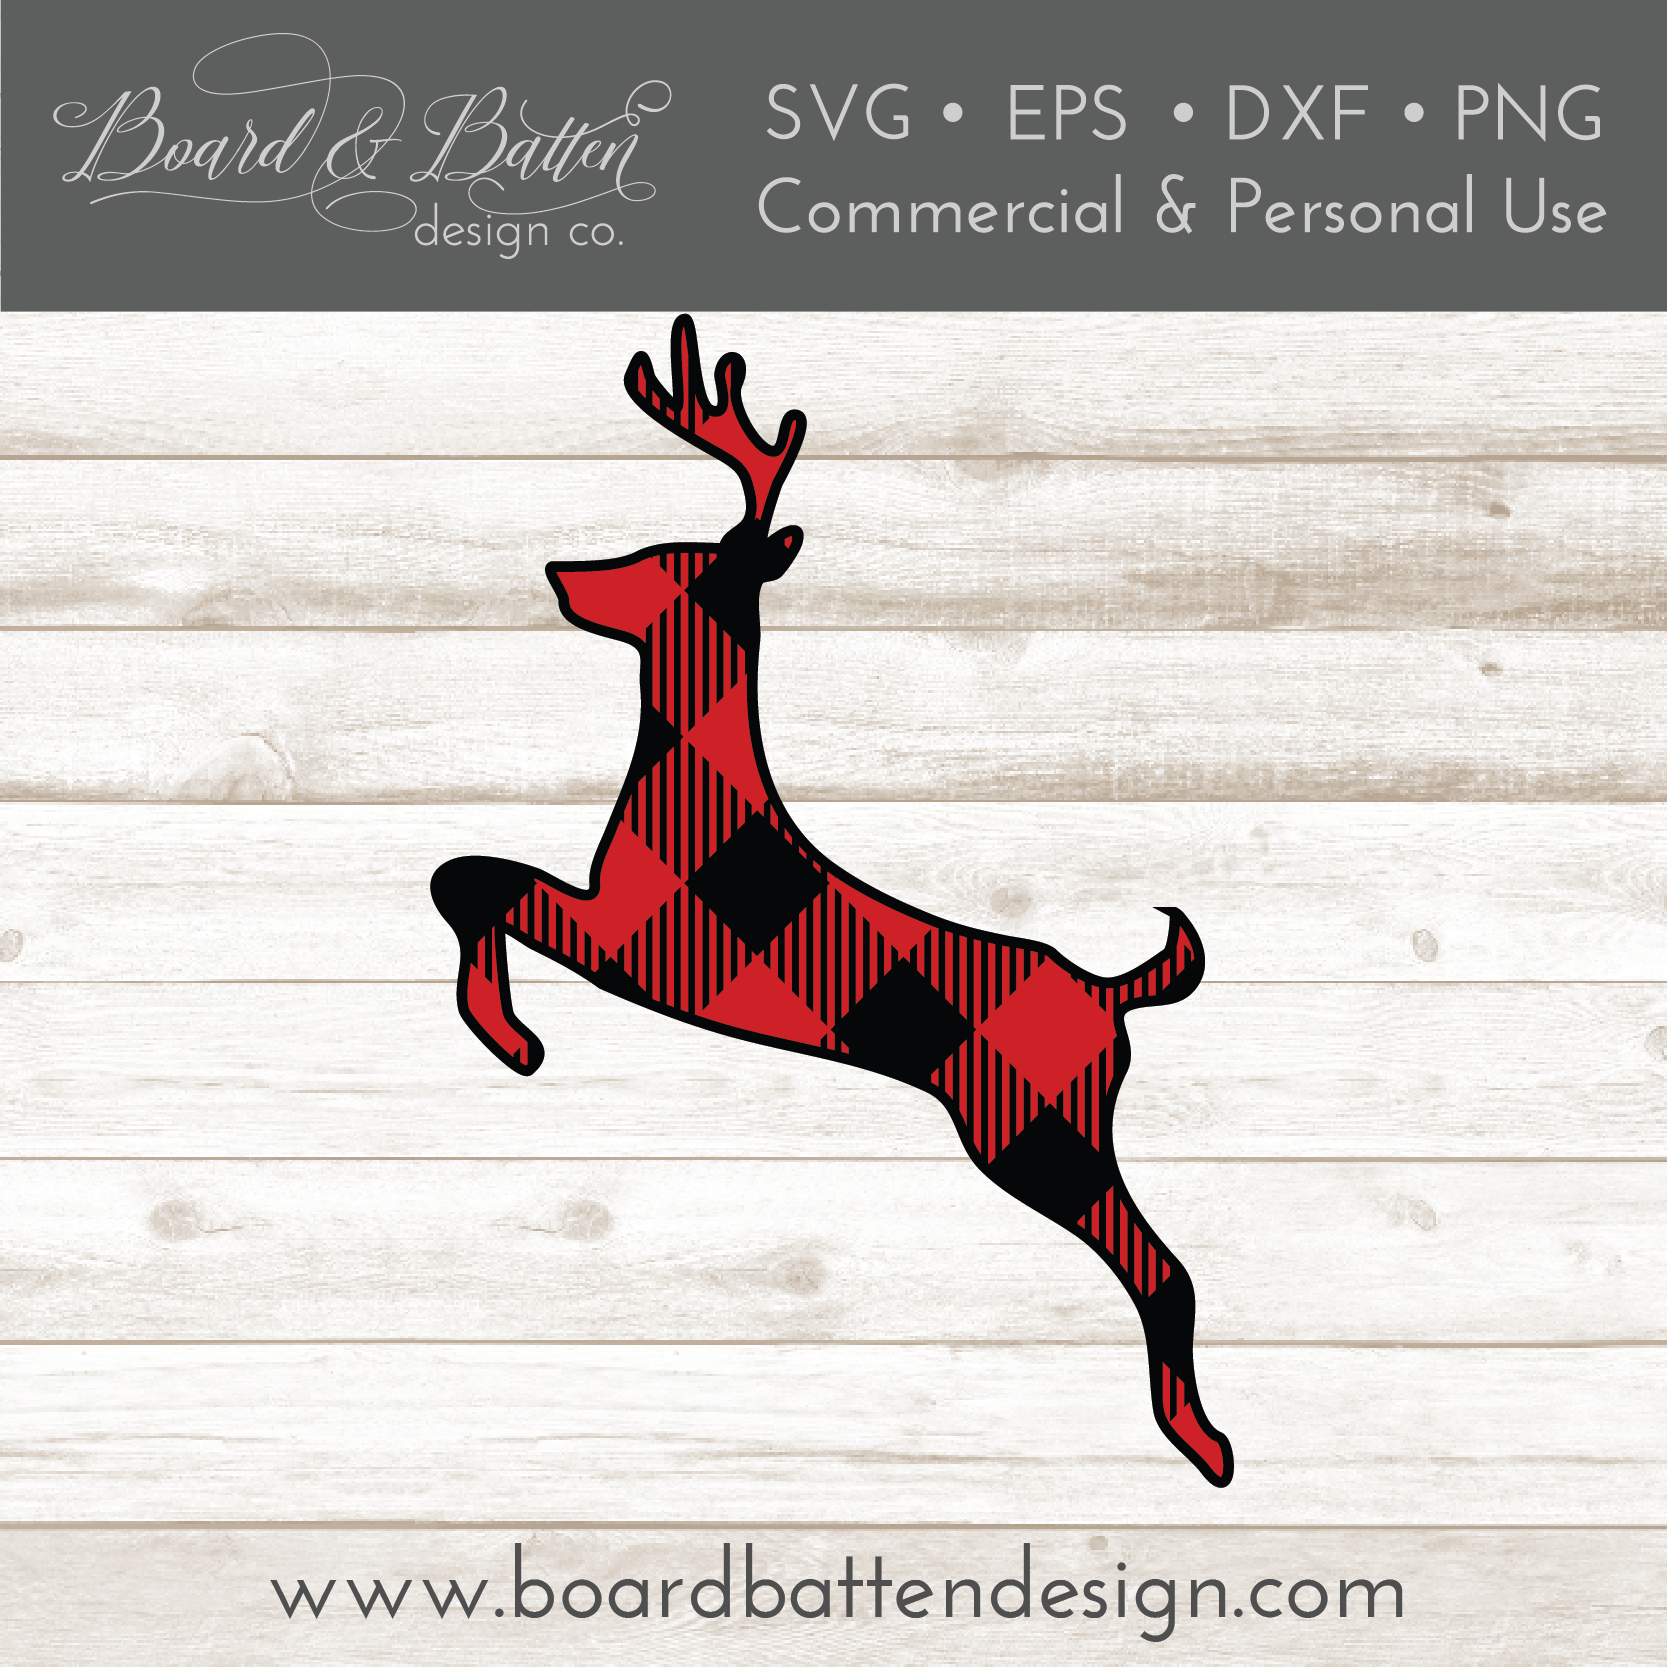 Buffalo Plaid Leaping Deer Shape Layered SVG - Commercial Use SVG Files